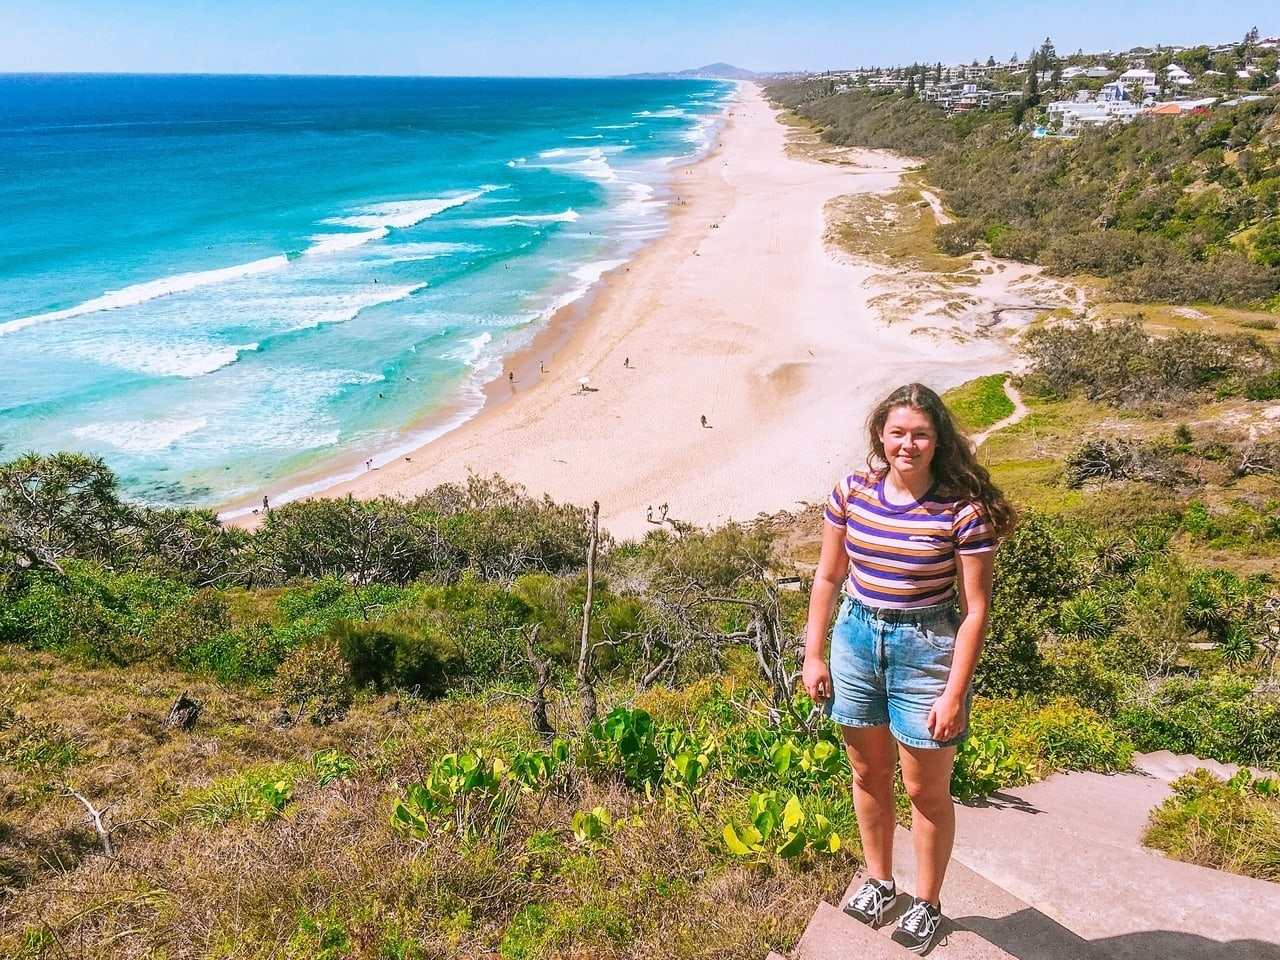 I have loads of travel tips from my time backpacking in Australia